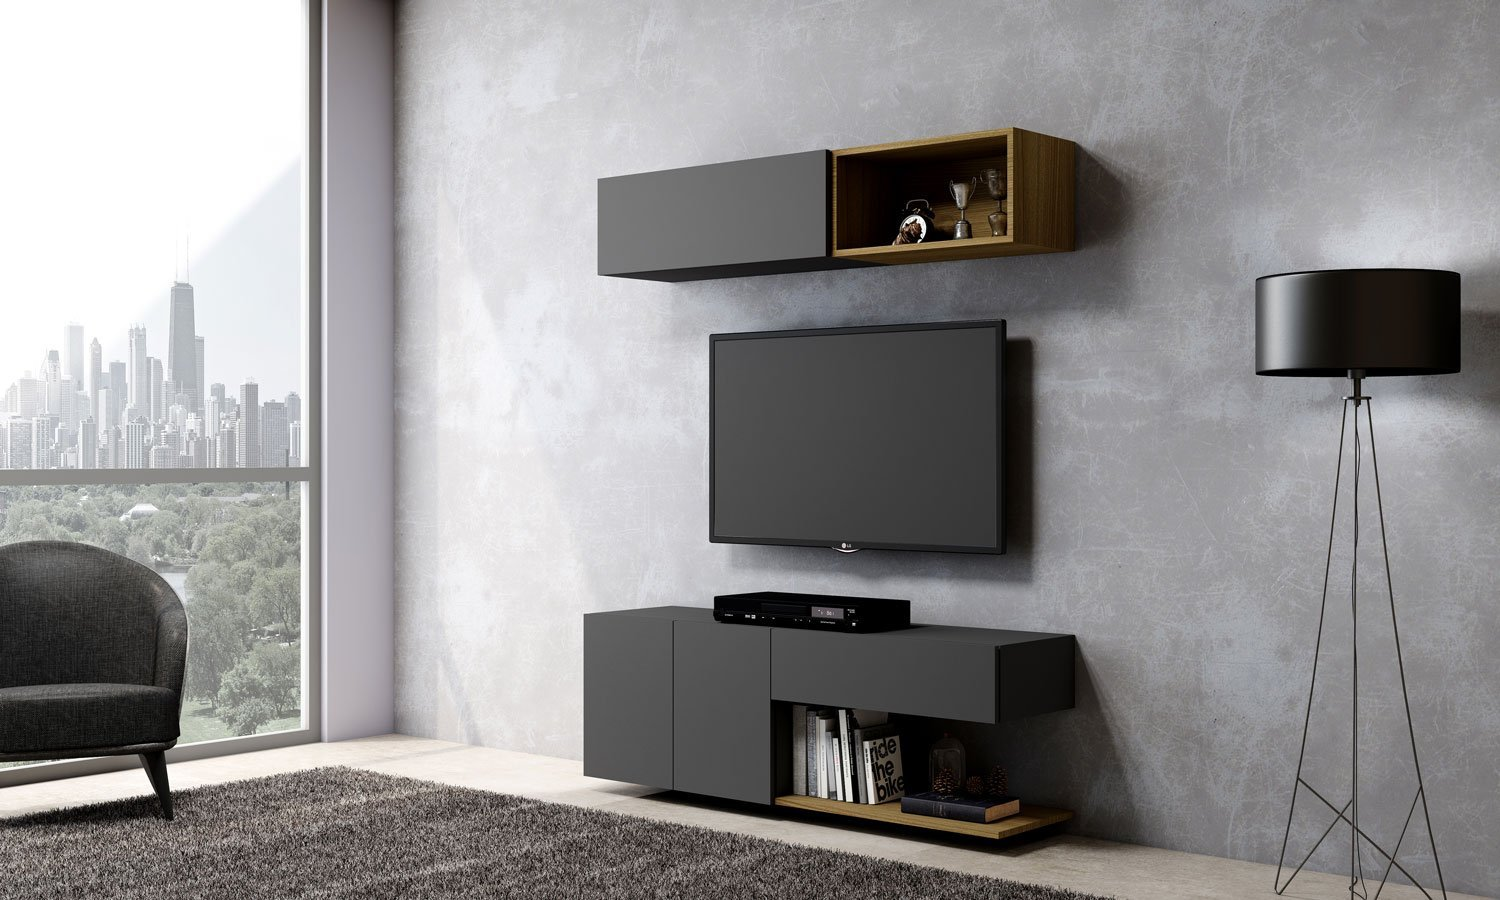 Matt TV unit with Storage in Drawer, Flap up in Dust Grey finish, Shelf and Open Unit in Natural Lancaster Oak